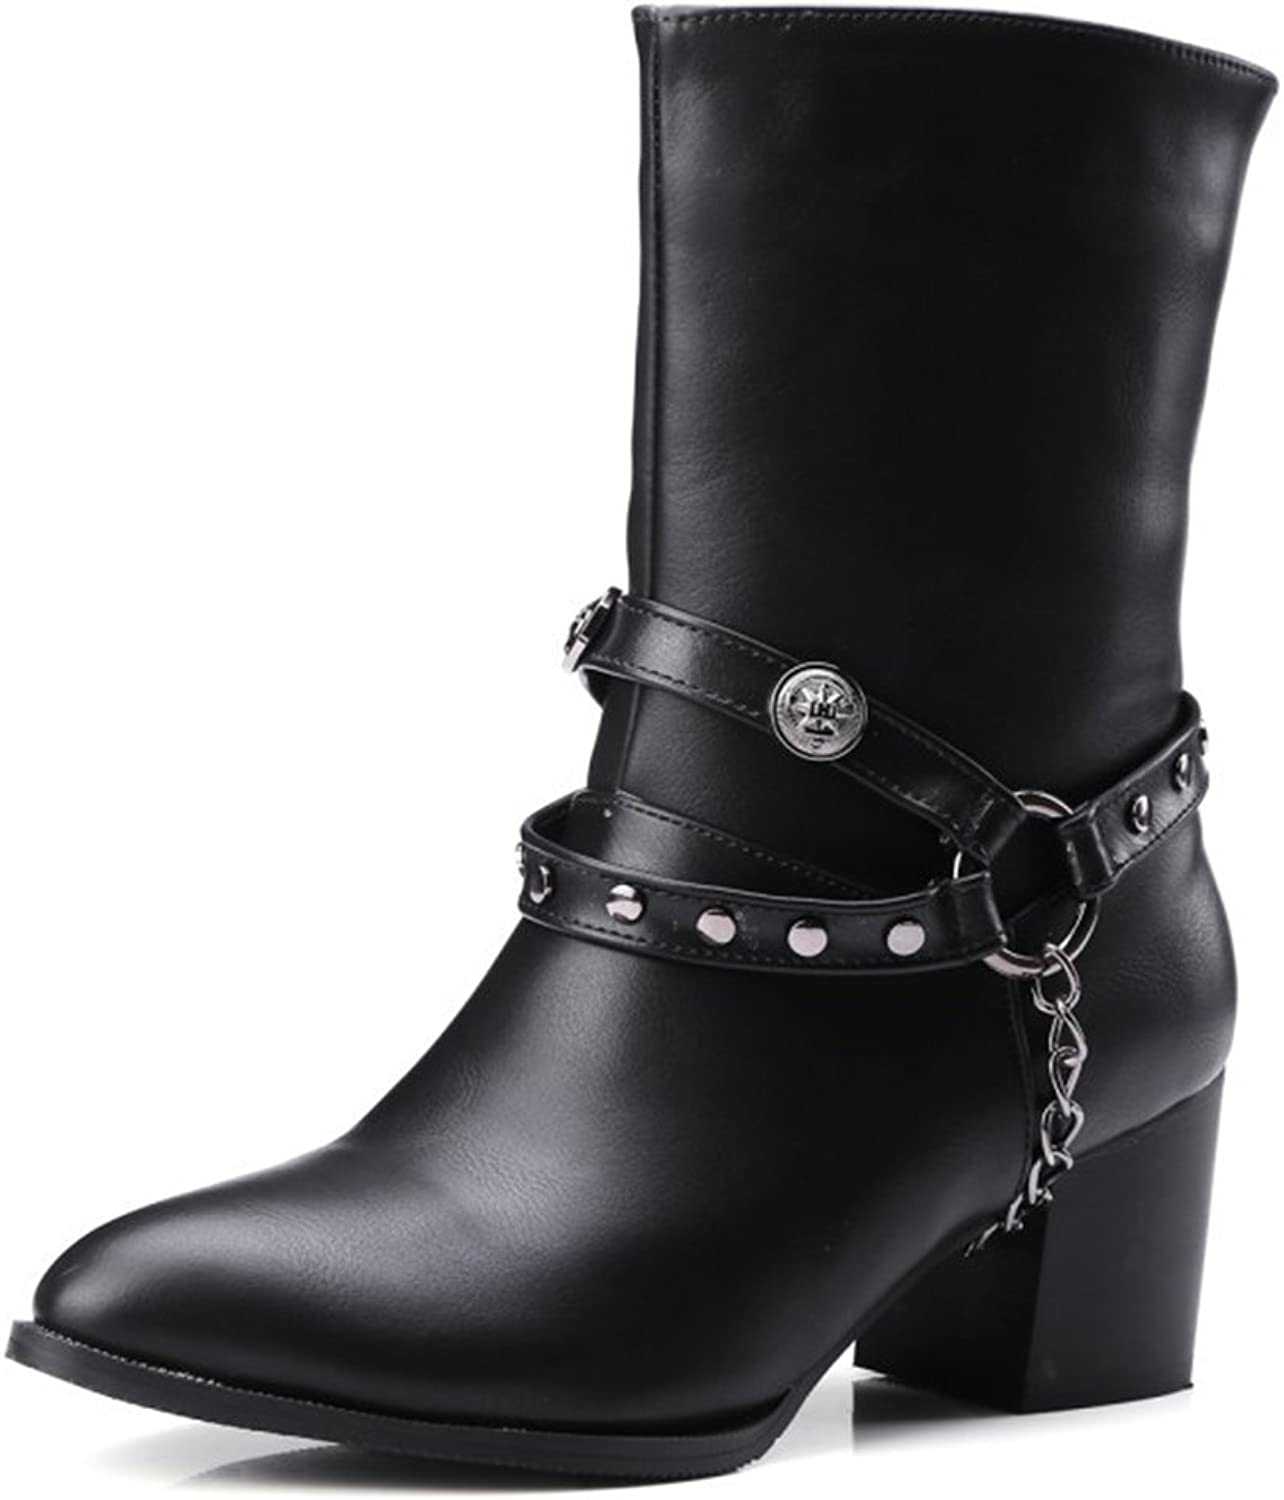 IDIFU Women's Stylish Studded Chain Pointed Toe Mid Block Heels Ankle Boots Riding Booties